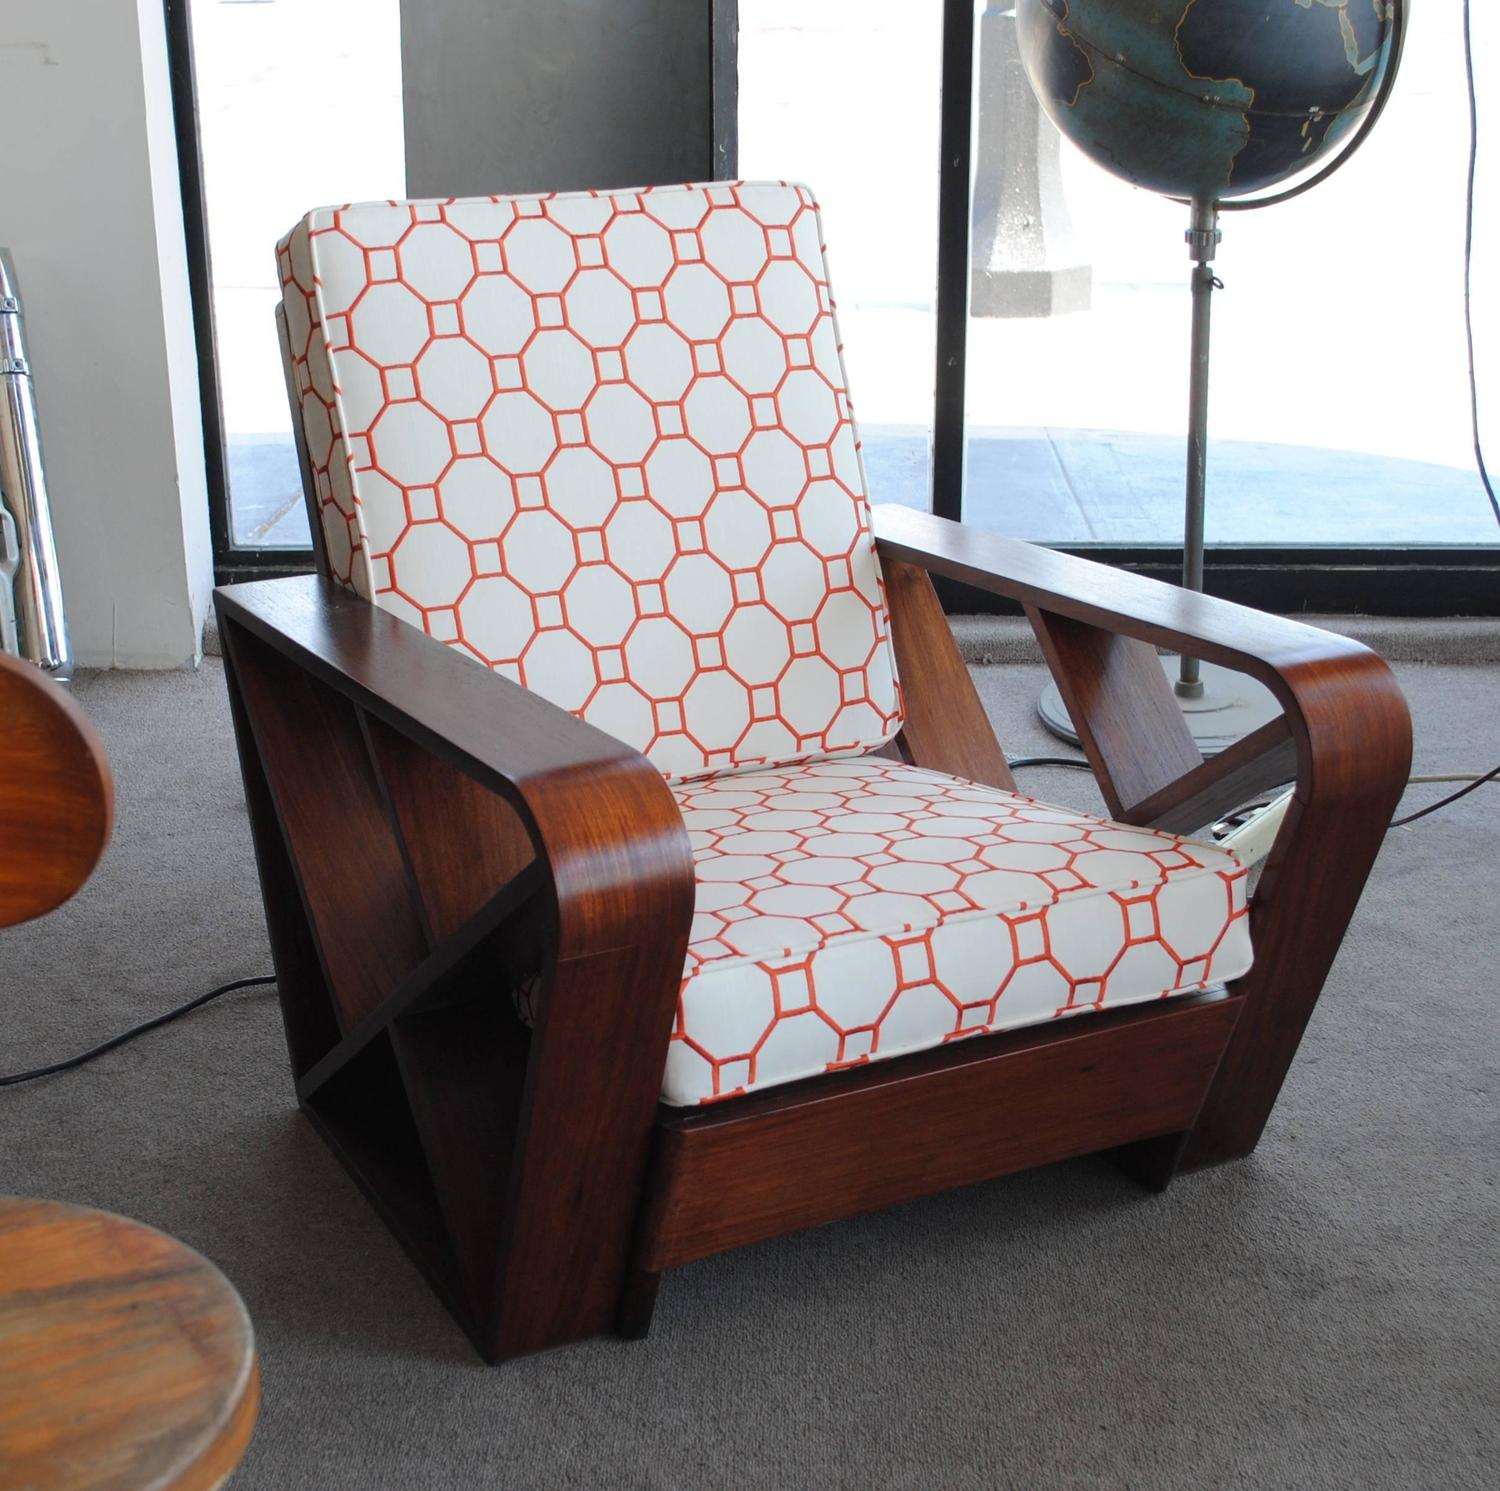 Art deco lounge chair style of paul frankl for sale at for Art deco style lounge